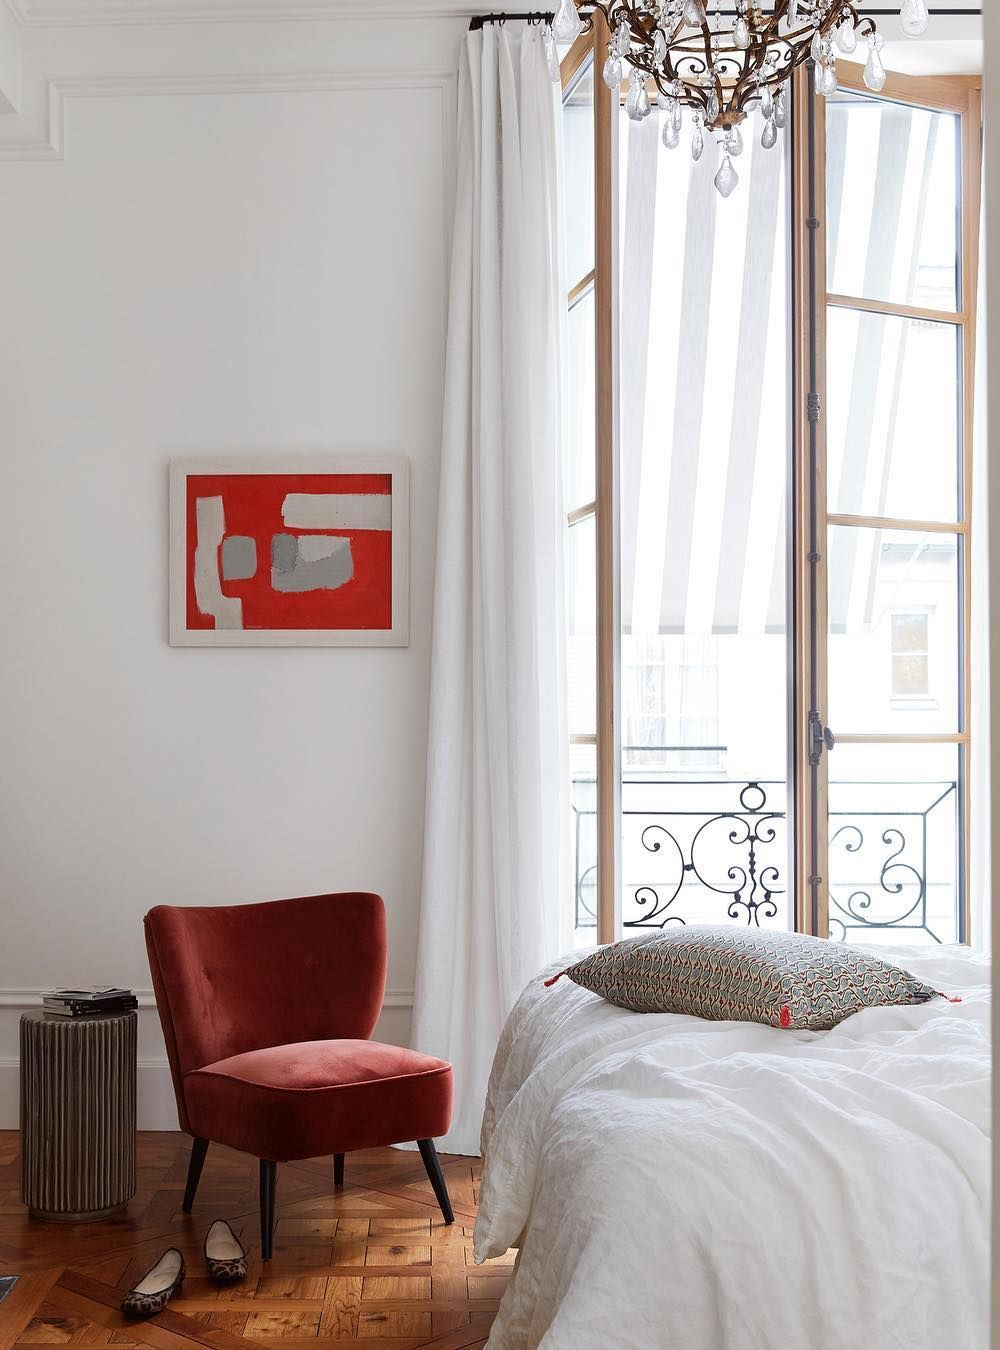 Parisian Bedroom with Red accent chair and wall art via @abkasha